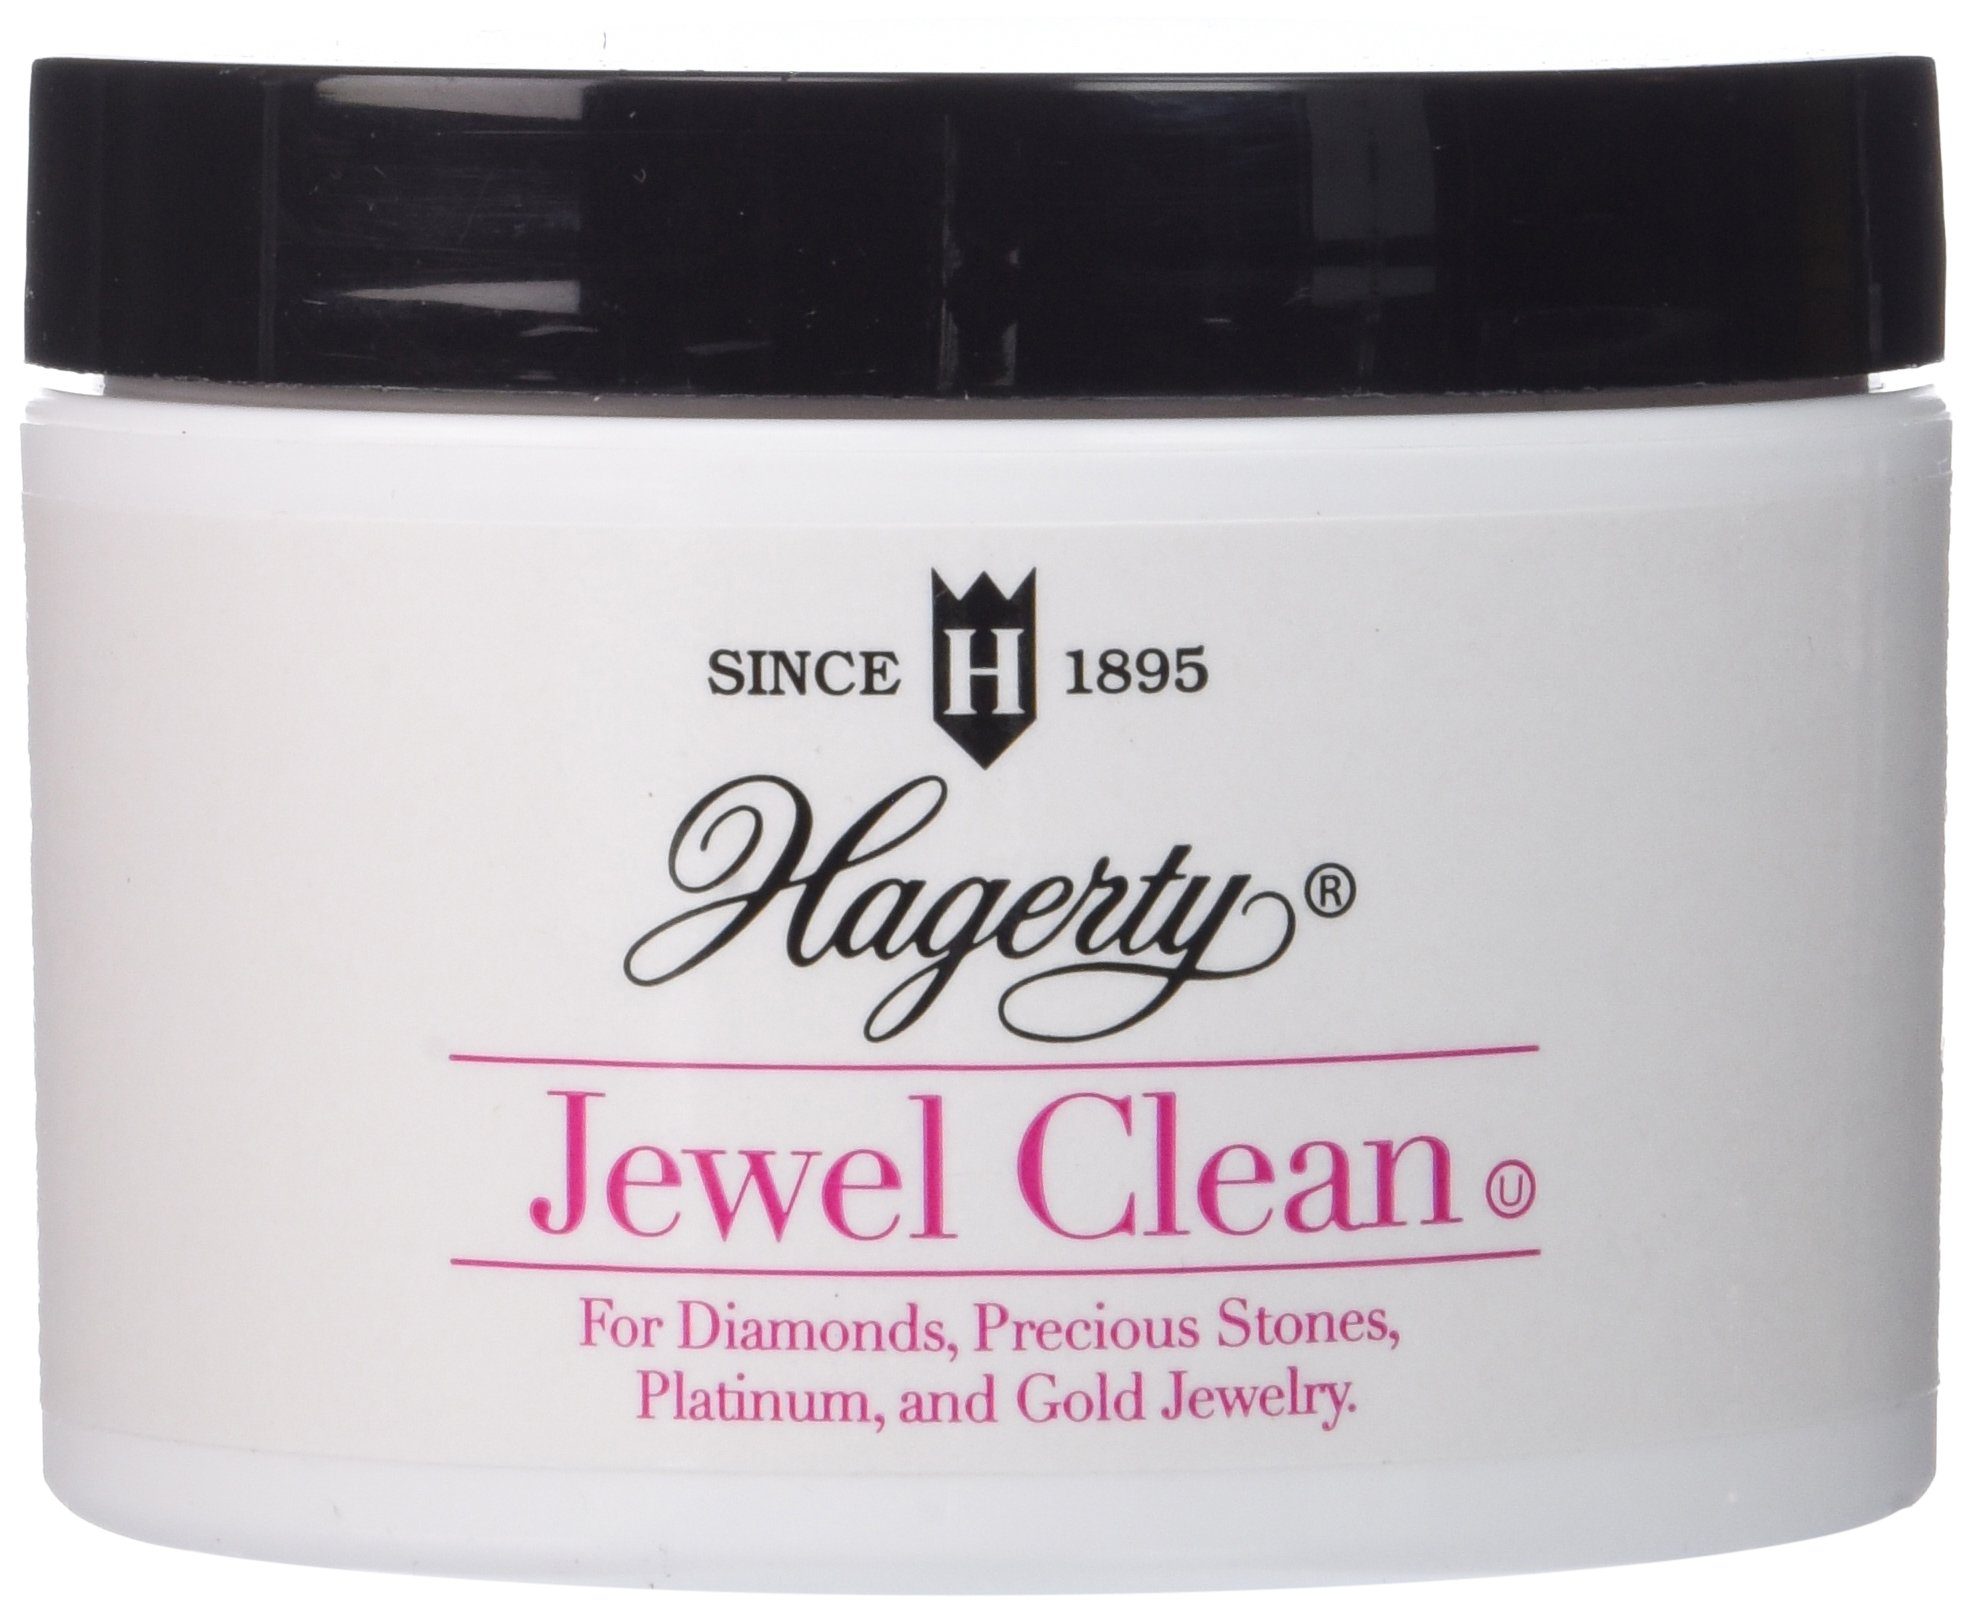 W. J. Hagerty Hagerty Luxury Jewel Clean, 7-Ounce